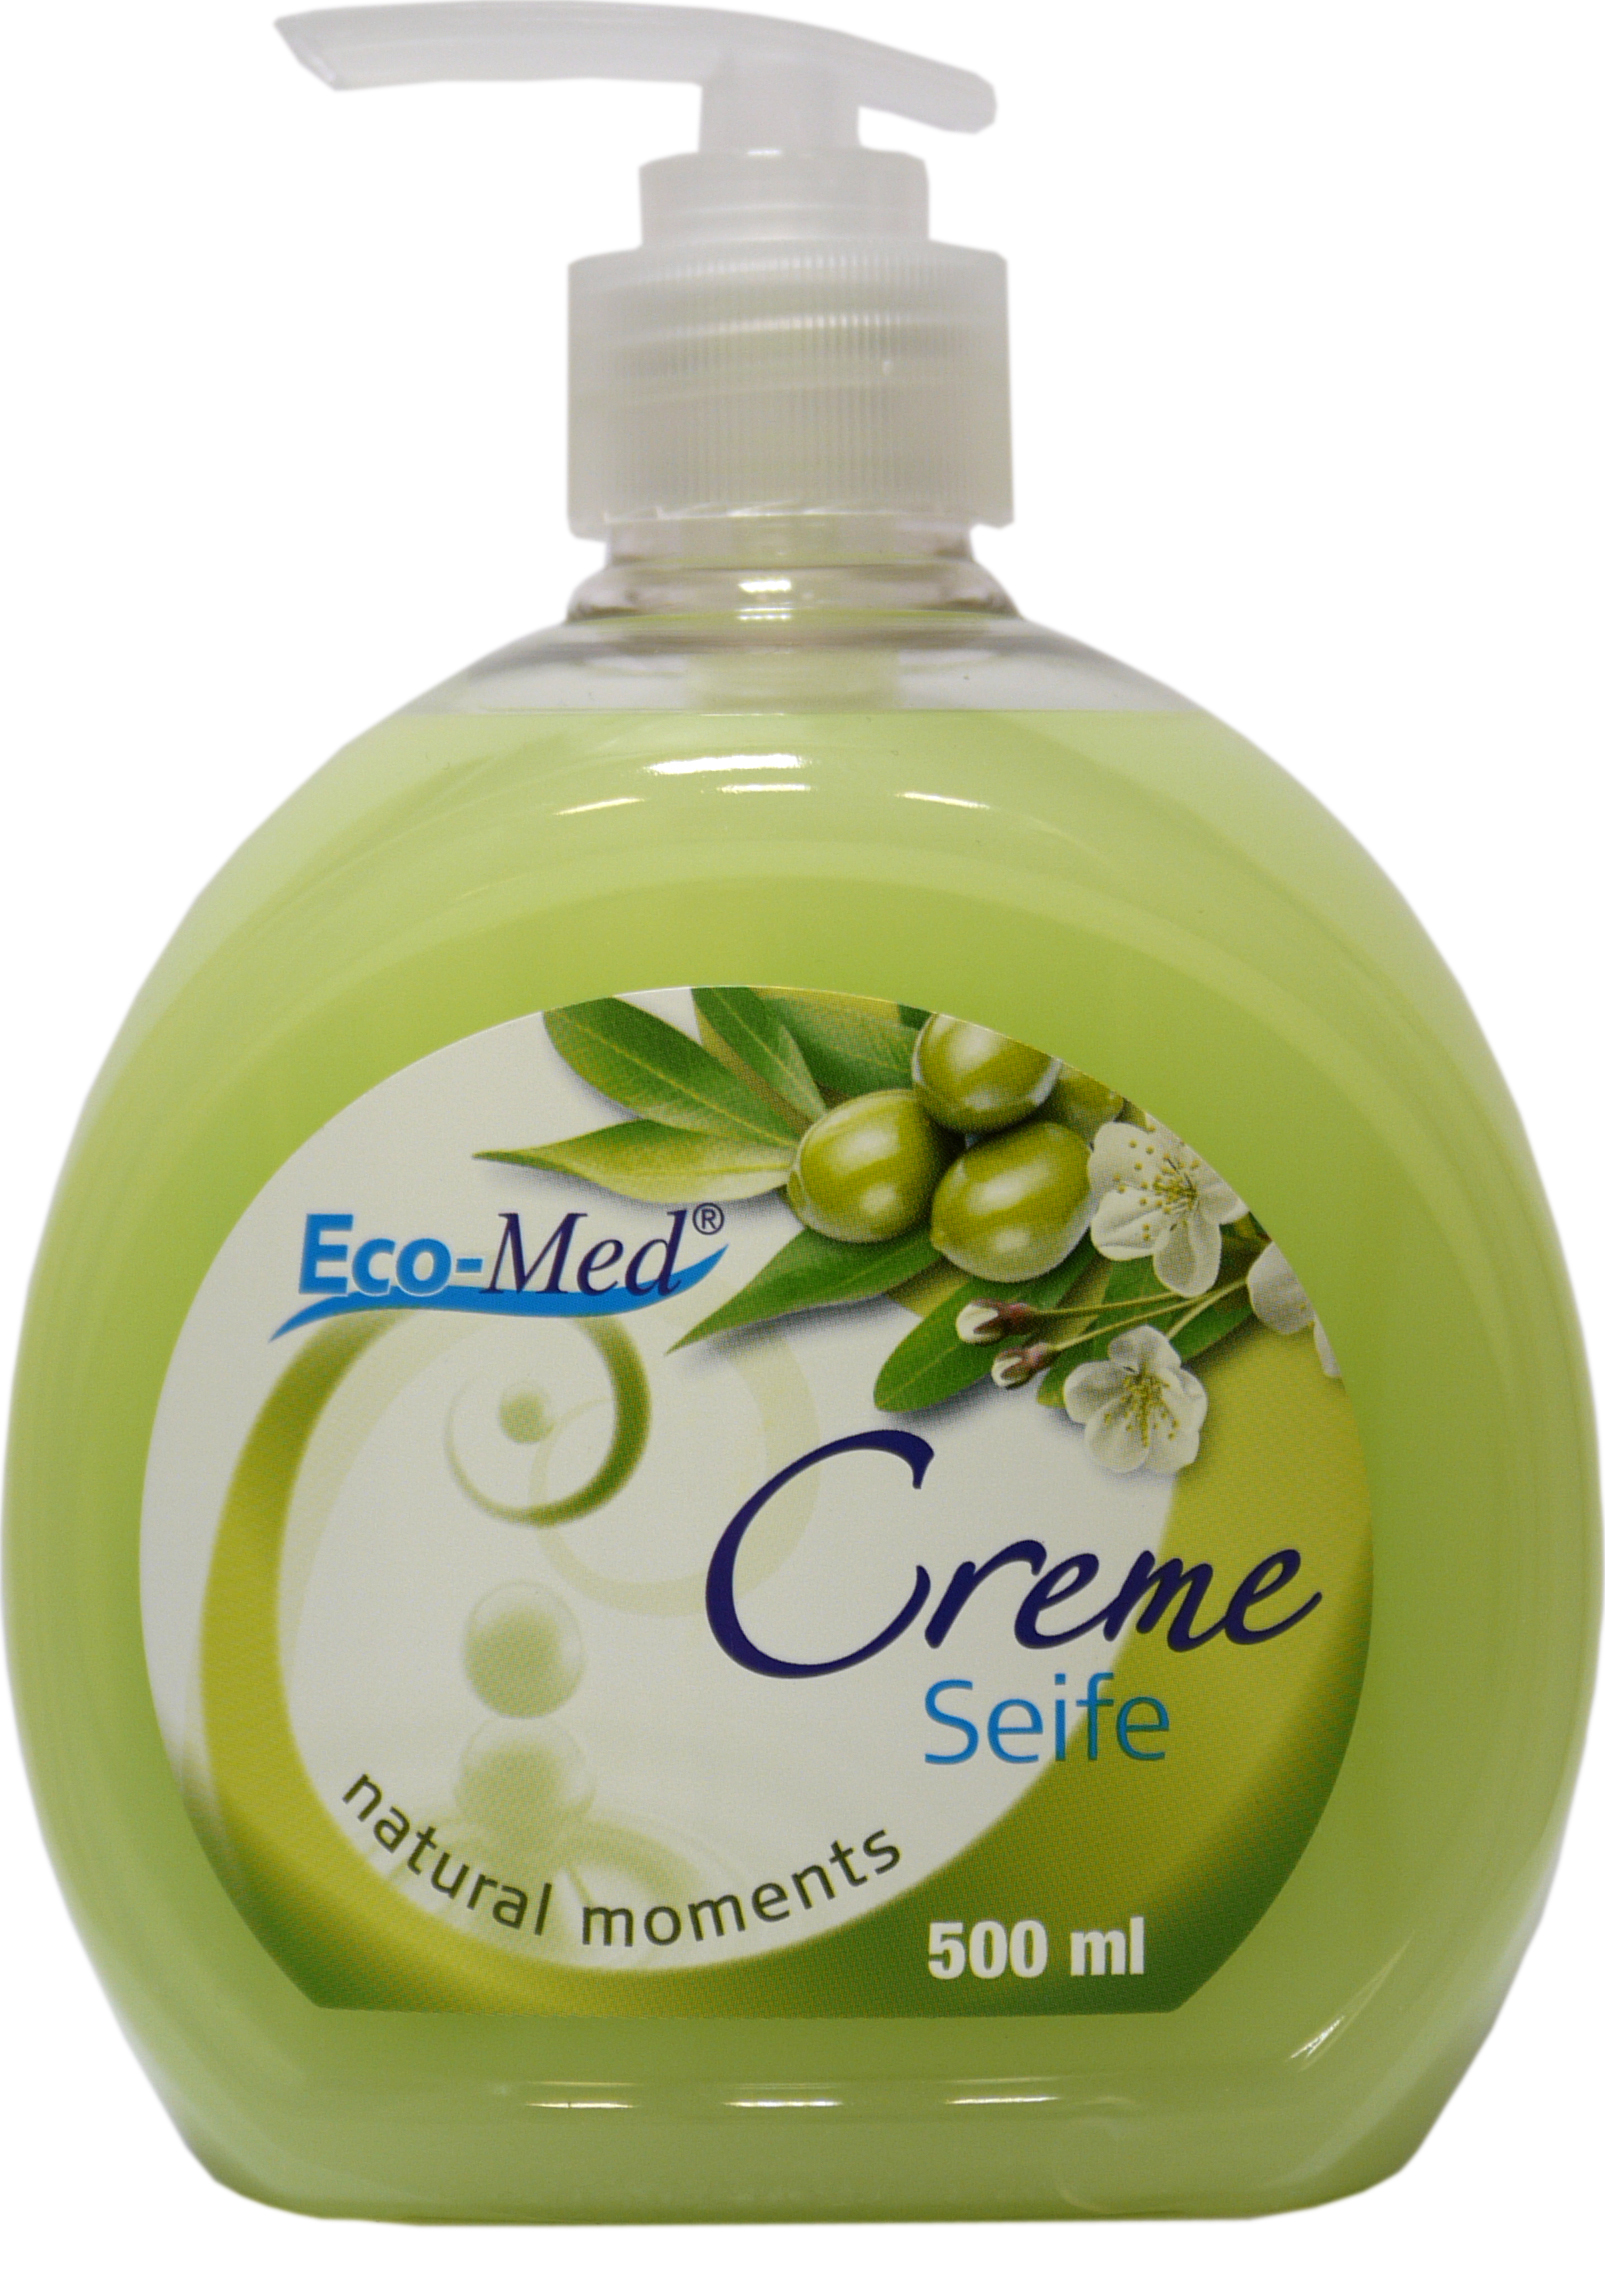 01603 - creamsoap natural moments 500 ml